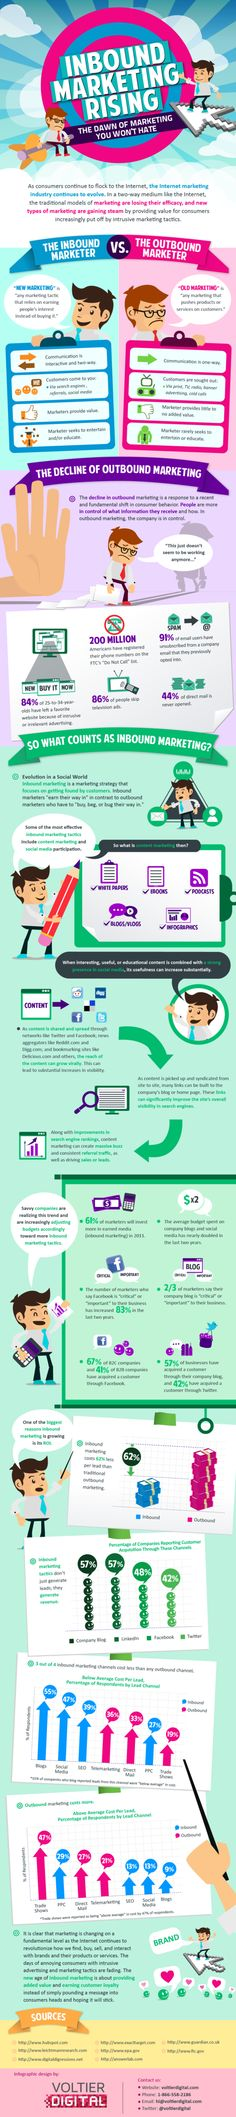 Have you shifted yet?  ~ Inbound marketing